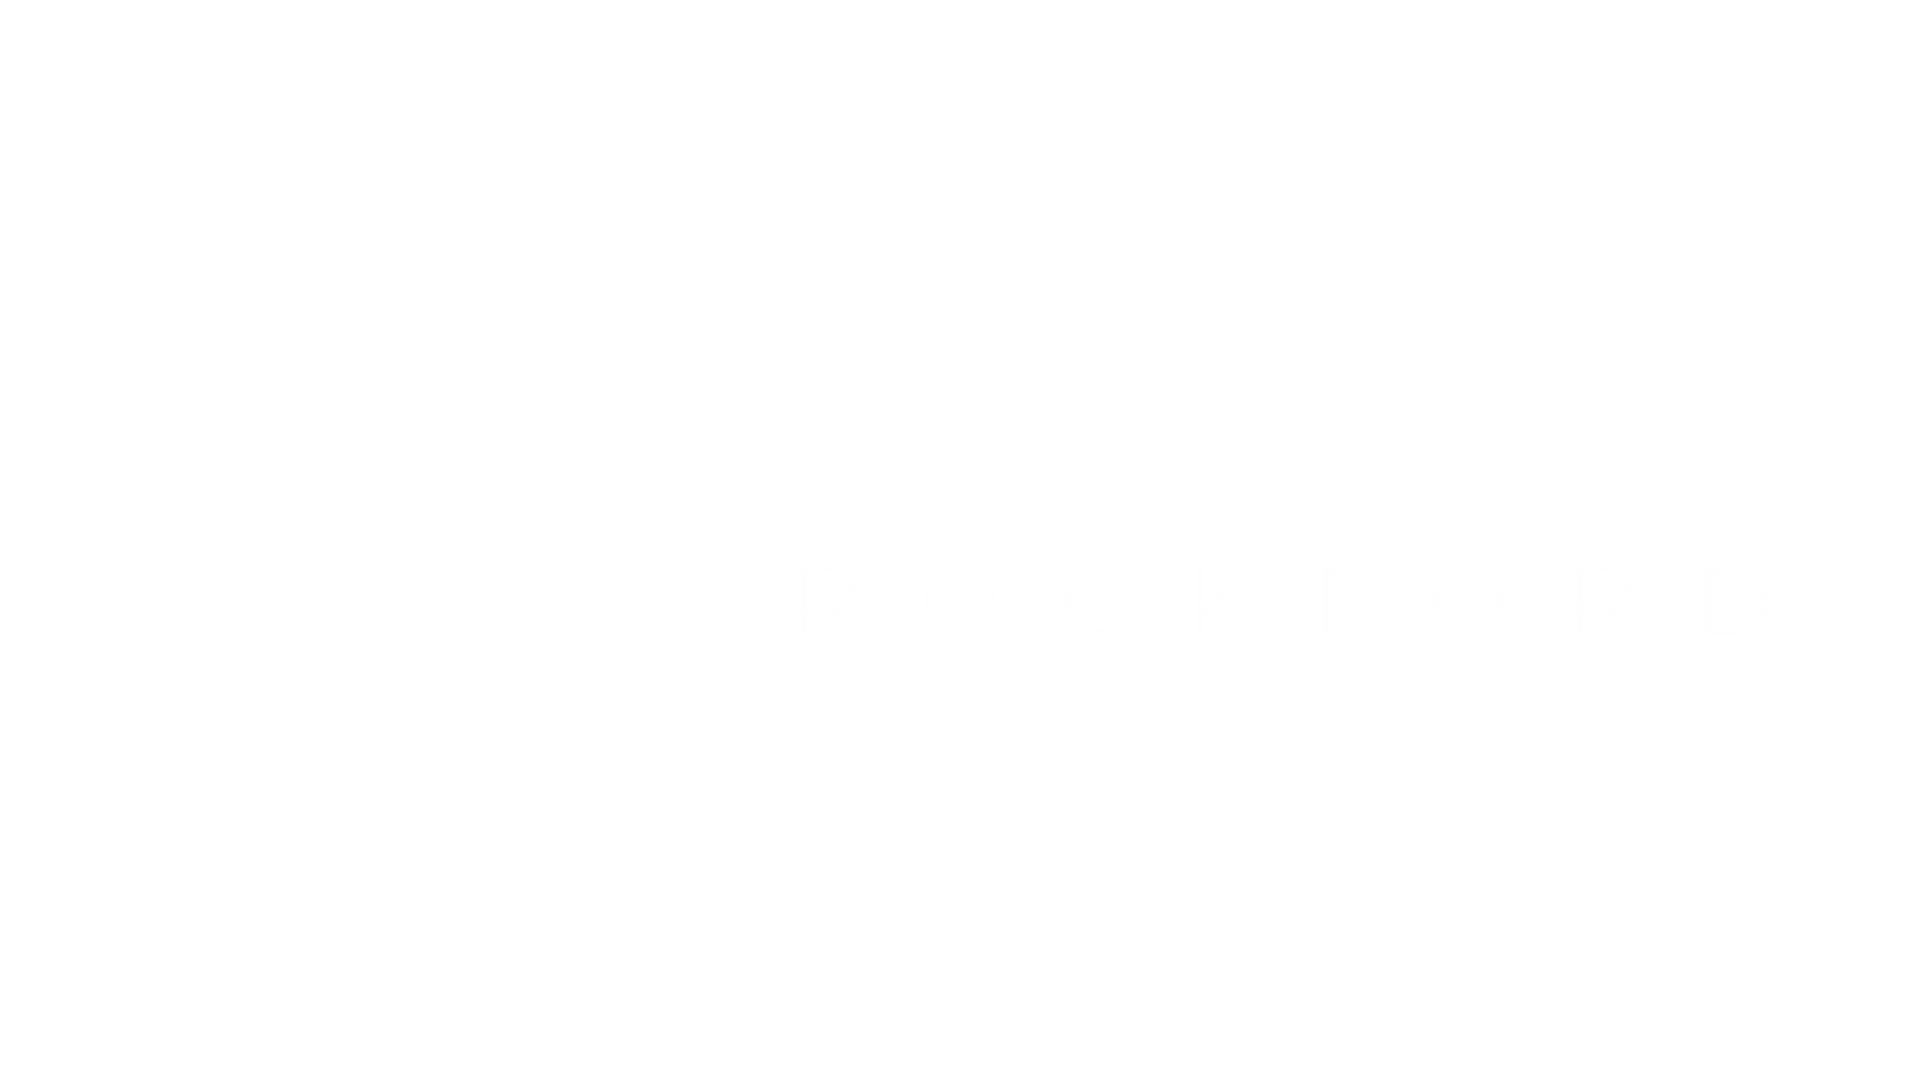 Alignment Rockford